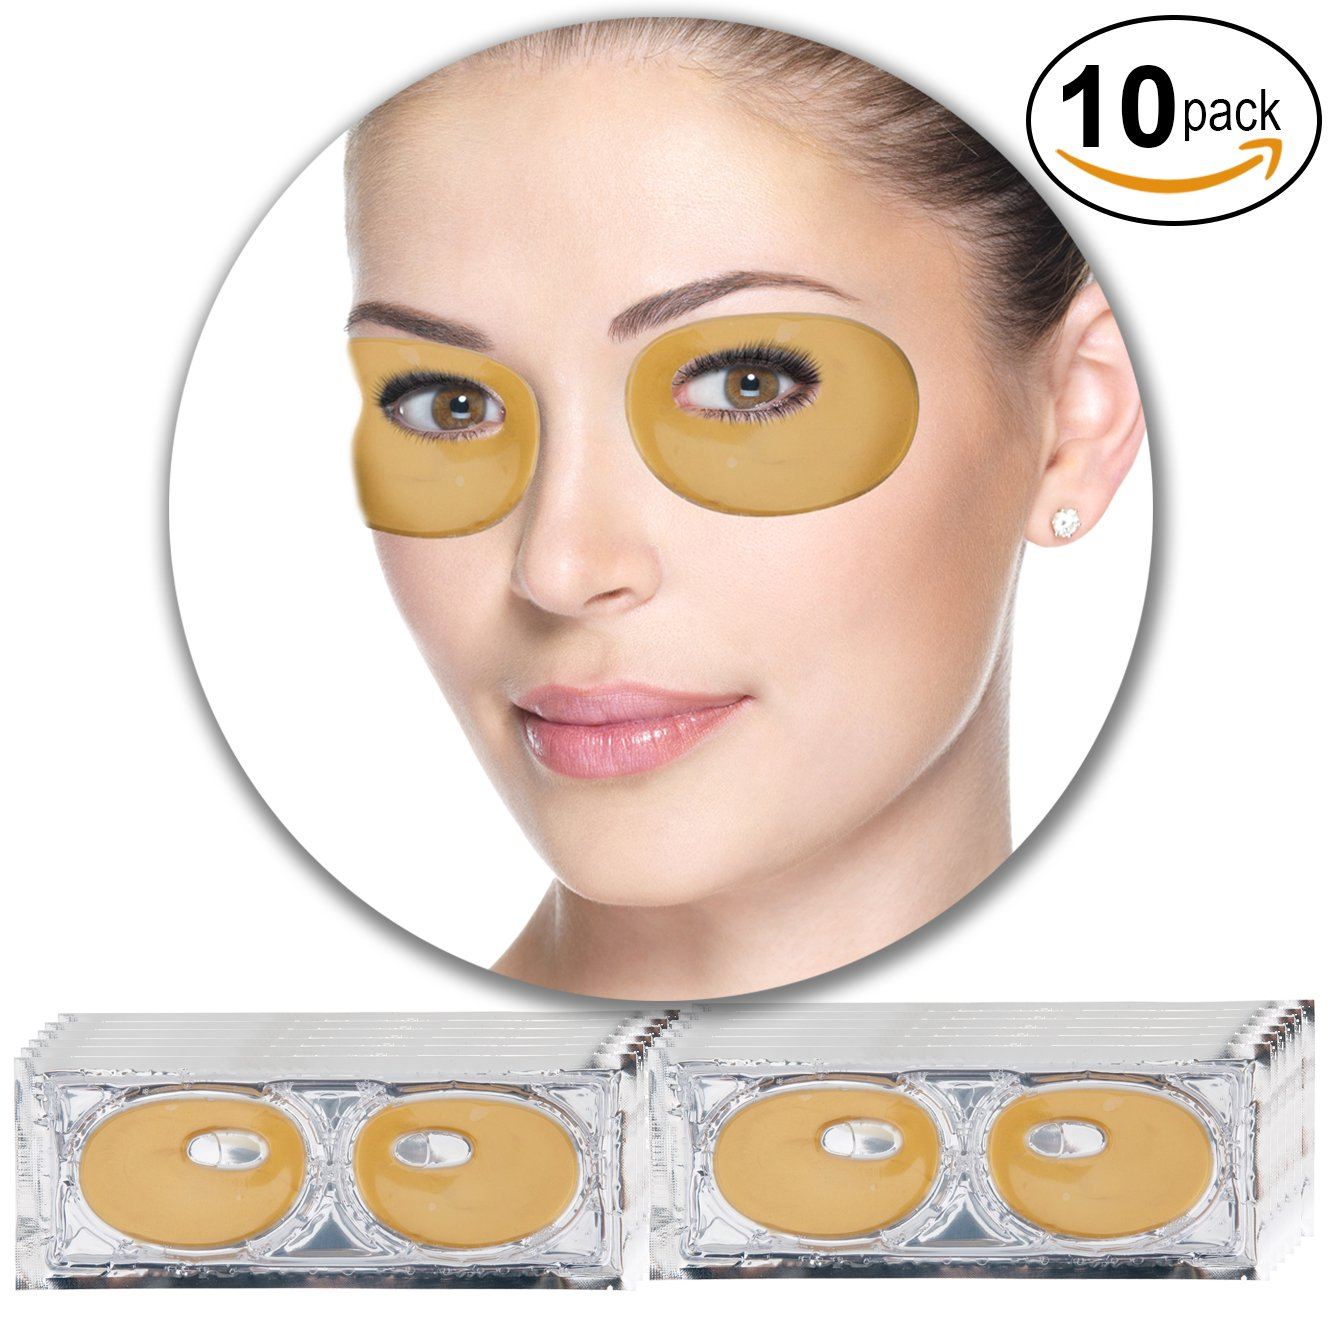 Anti Aging Treatments Set / Kit of 10 Pairs Eyes / Eyelids 24 K Gold / Golden Collagen Gel Crystal Masks / Patches / Pads for Wrinkles / Crows Feet, Dark Circles and Puffiness / Puffy Eyes Removal and Moisturizing VAGA